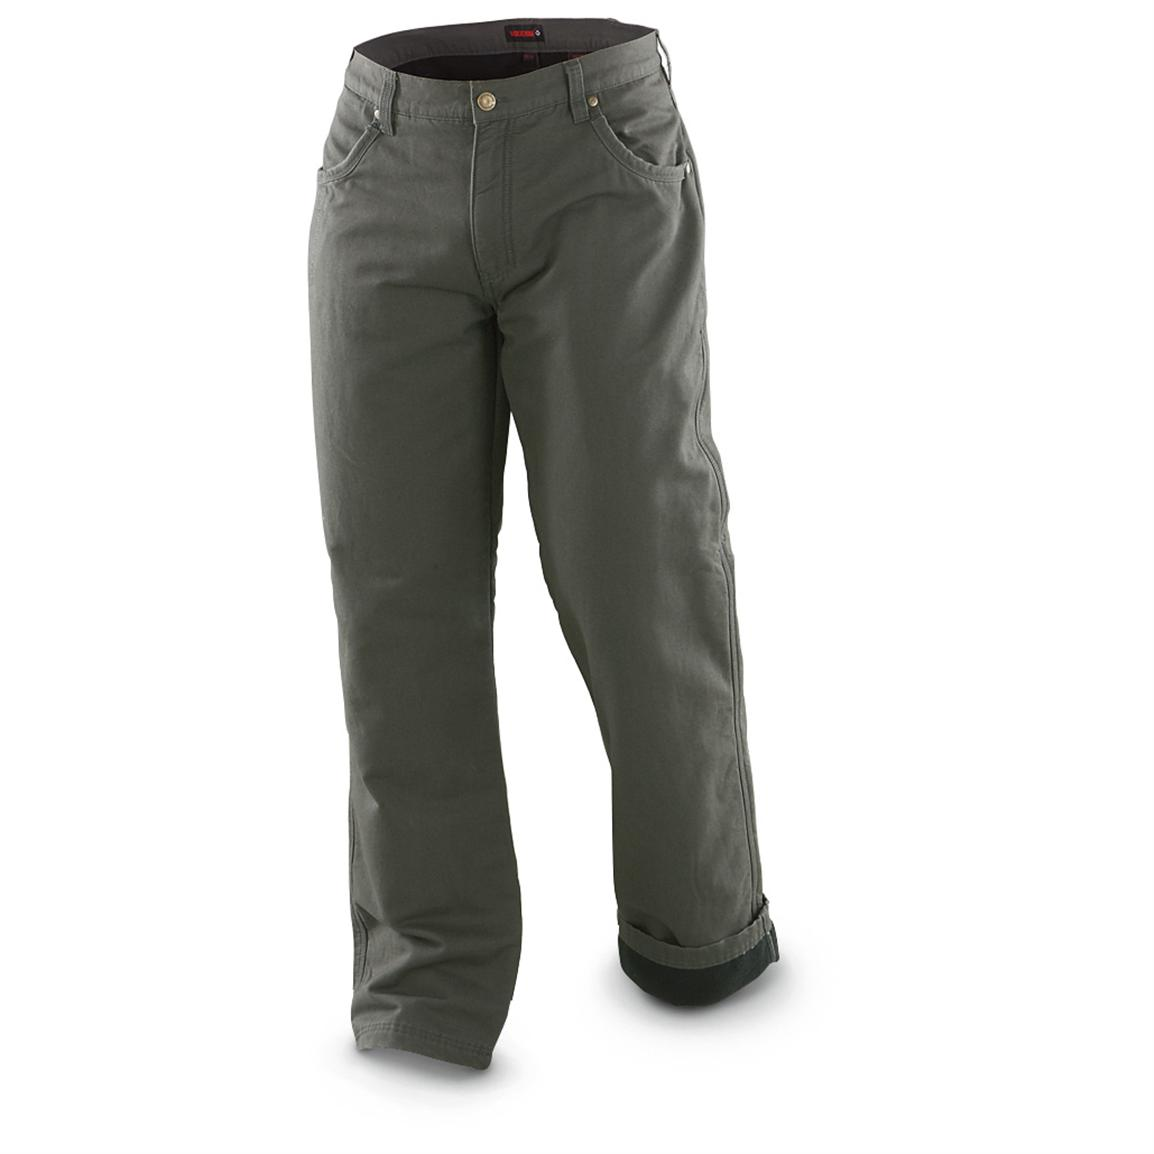 Wolverine® Mechanic's Insulated Pants, Charcoal; Cozy fleece-lined warmth!